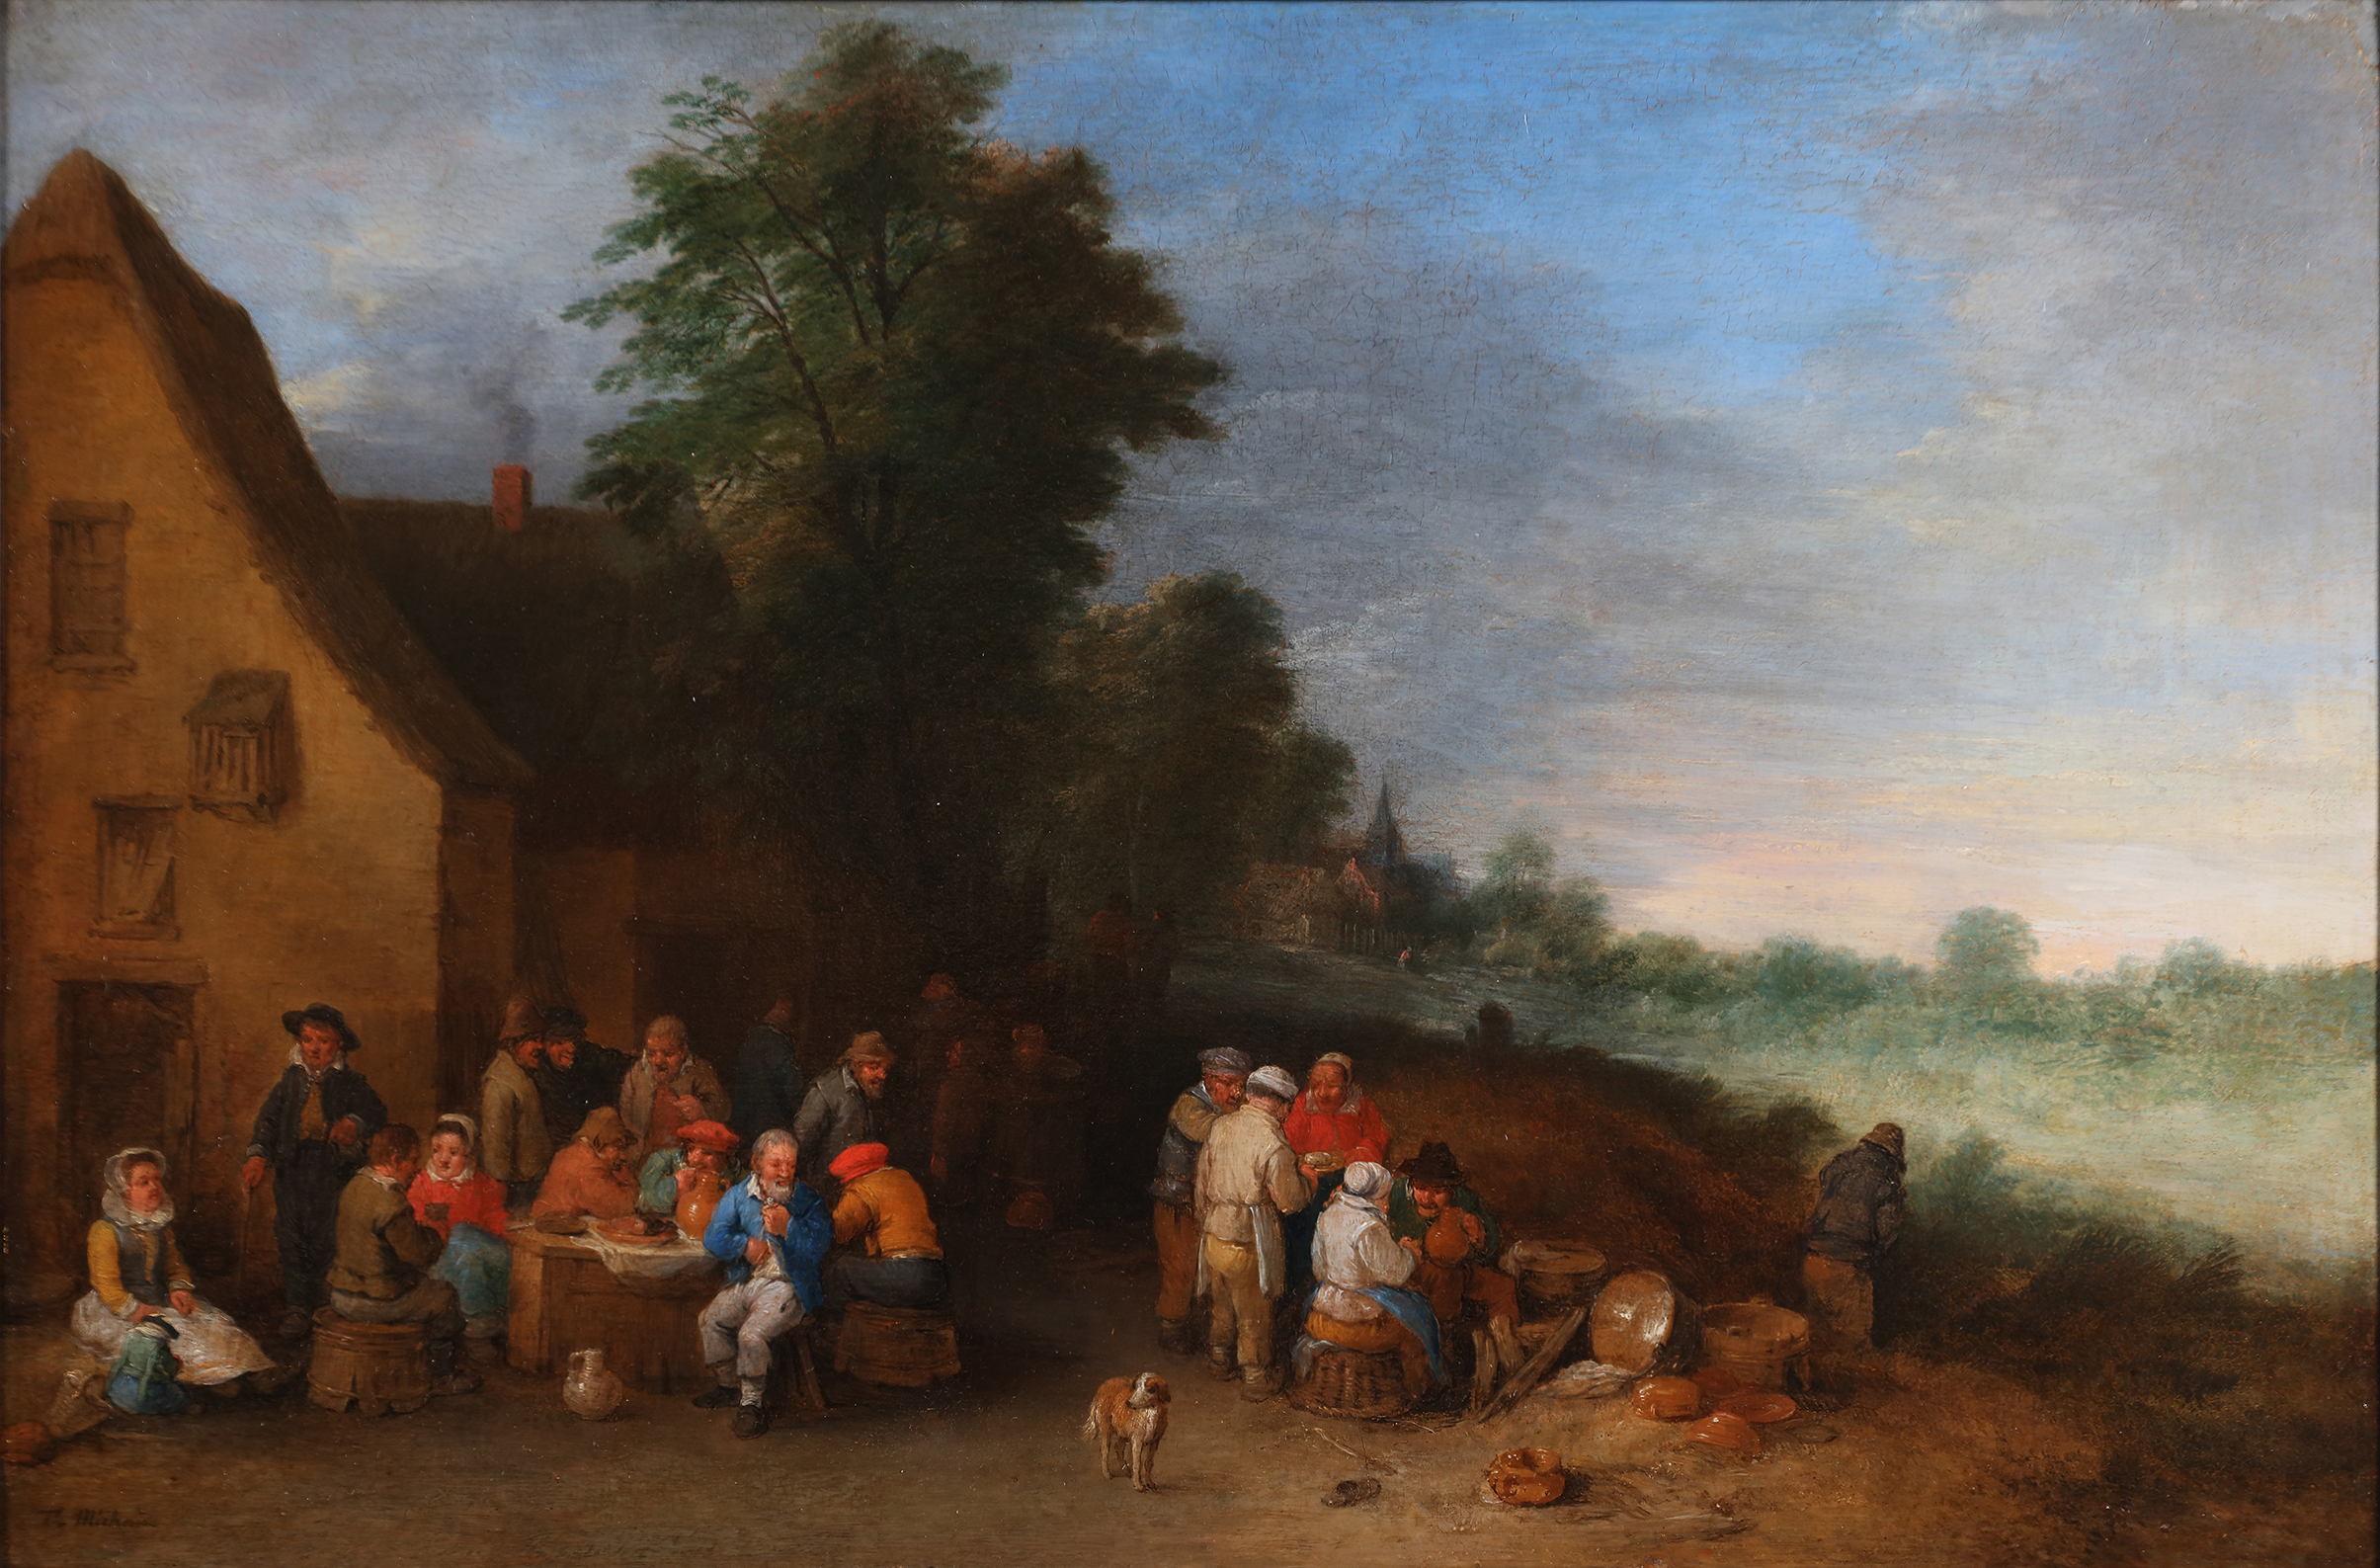 Peasants eating, drinking and conversing in front of a tavern